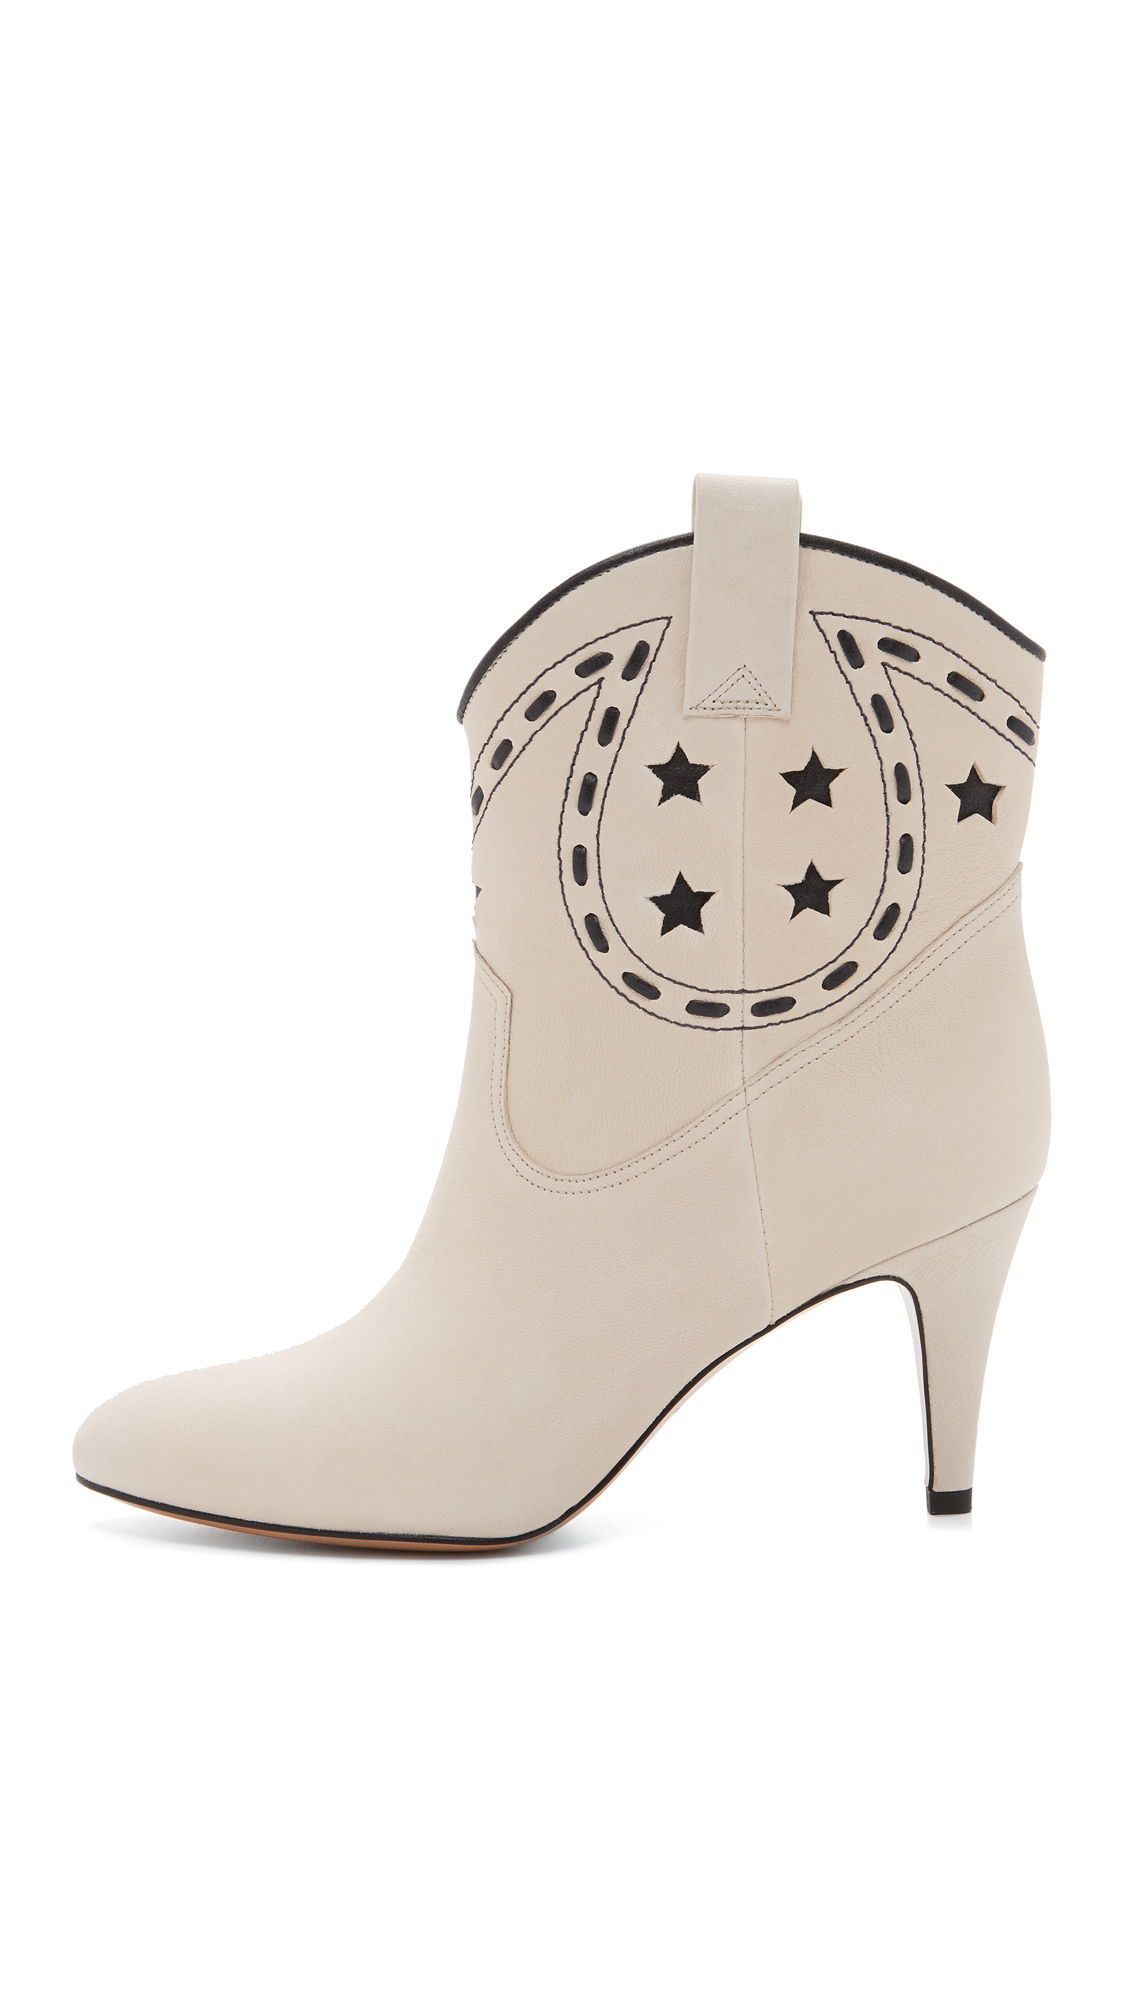 a89c4c9d3c2 Lyst - Marc Jacobs Georgia Cowboy Booties in White